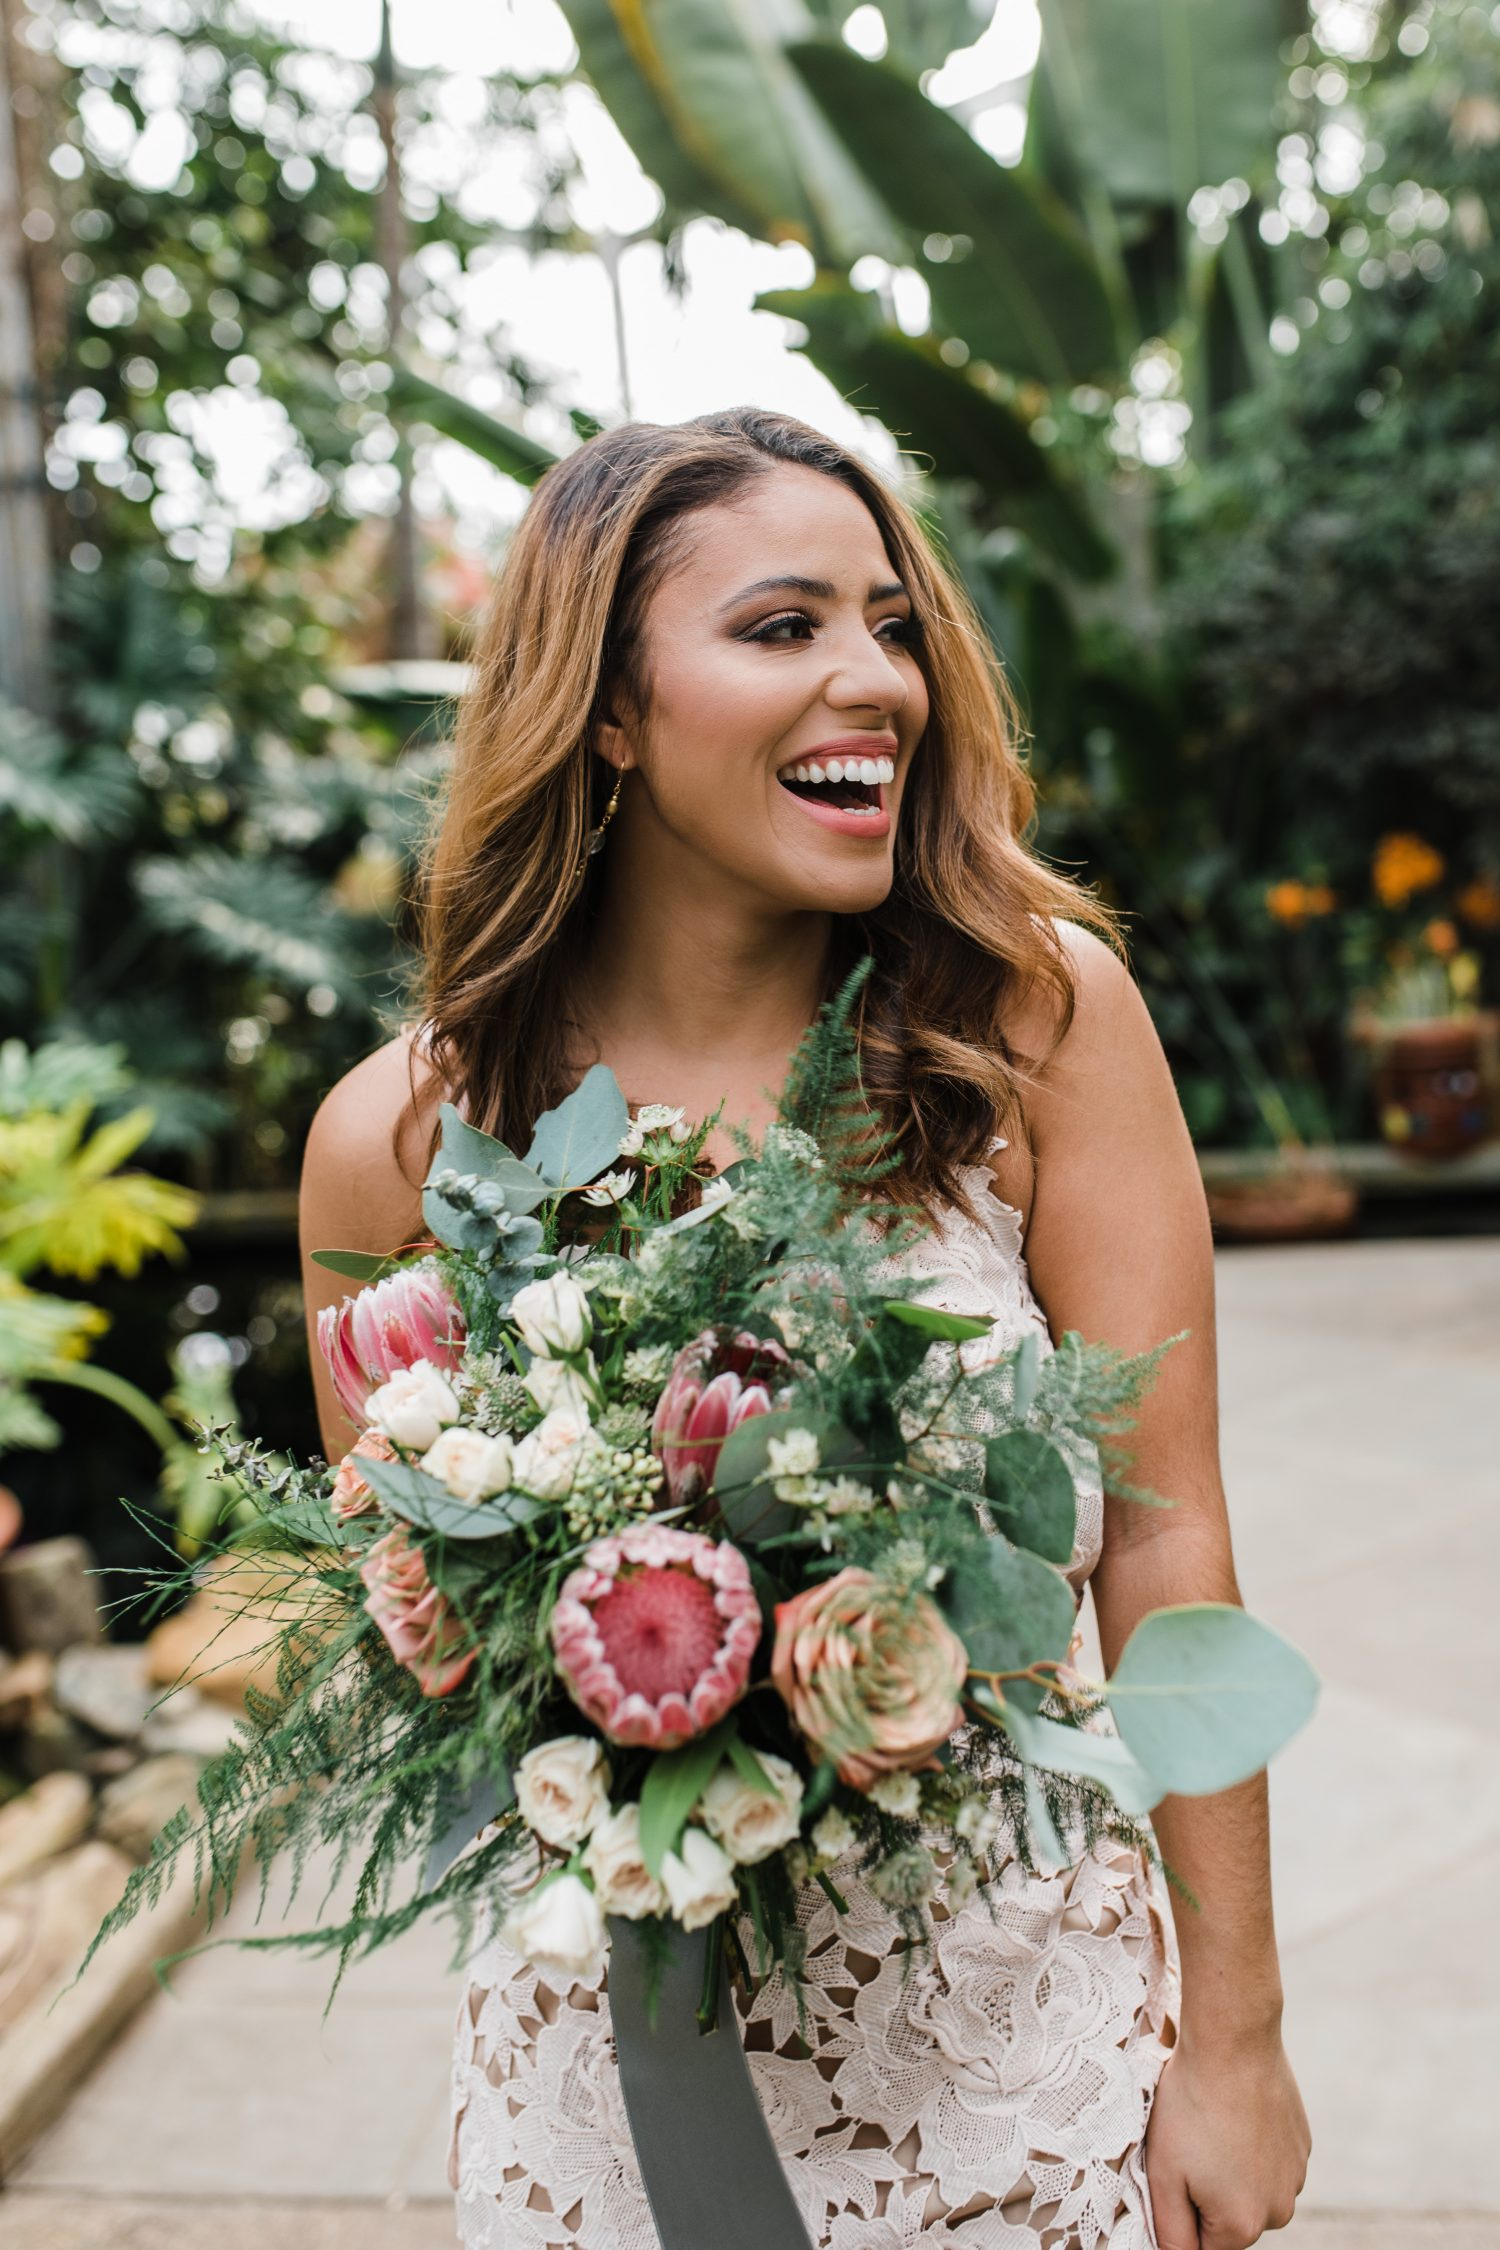 Easterday Creative, Adventurous Wedding Photographer and Storyteller, Eco-Friendly Bridal Shoot, Daniel Stowe Botanical Garden, South Carolina